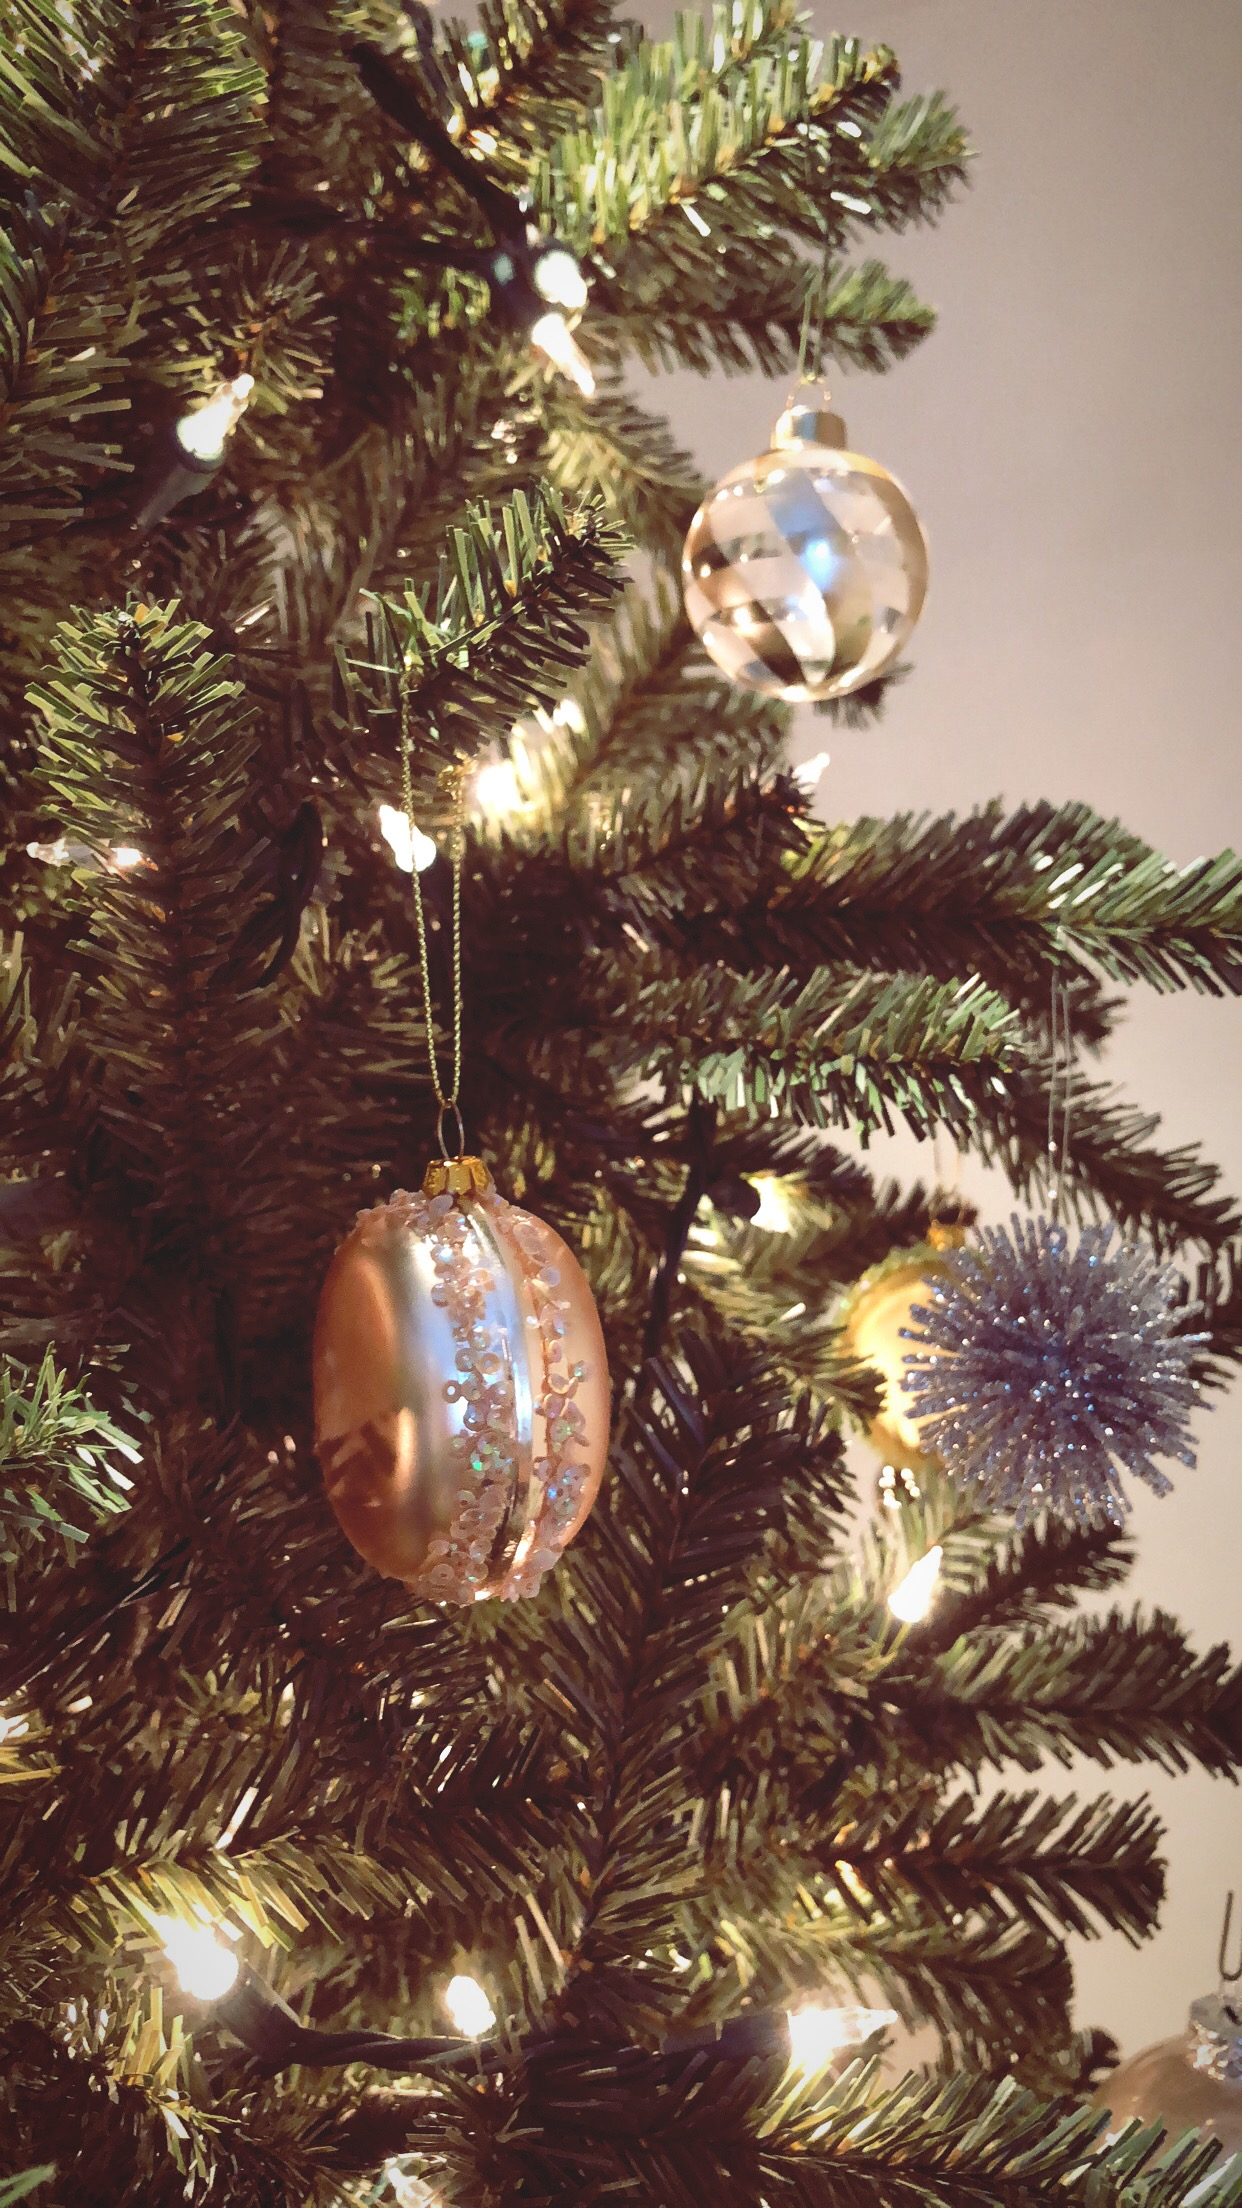 My Favorite Christmas Ornaments | The Style Scribe